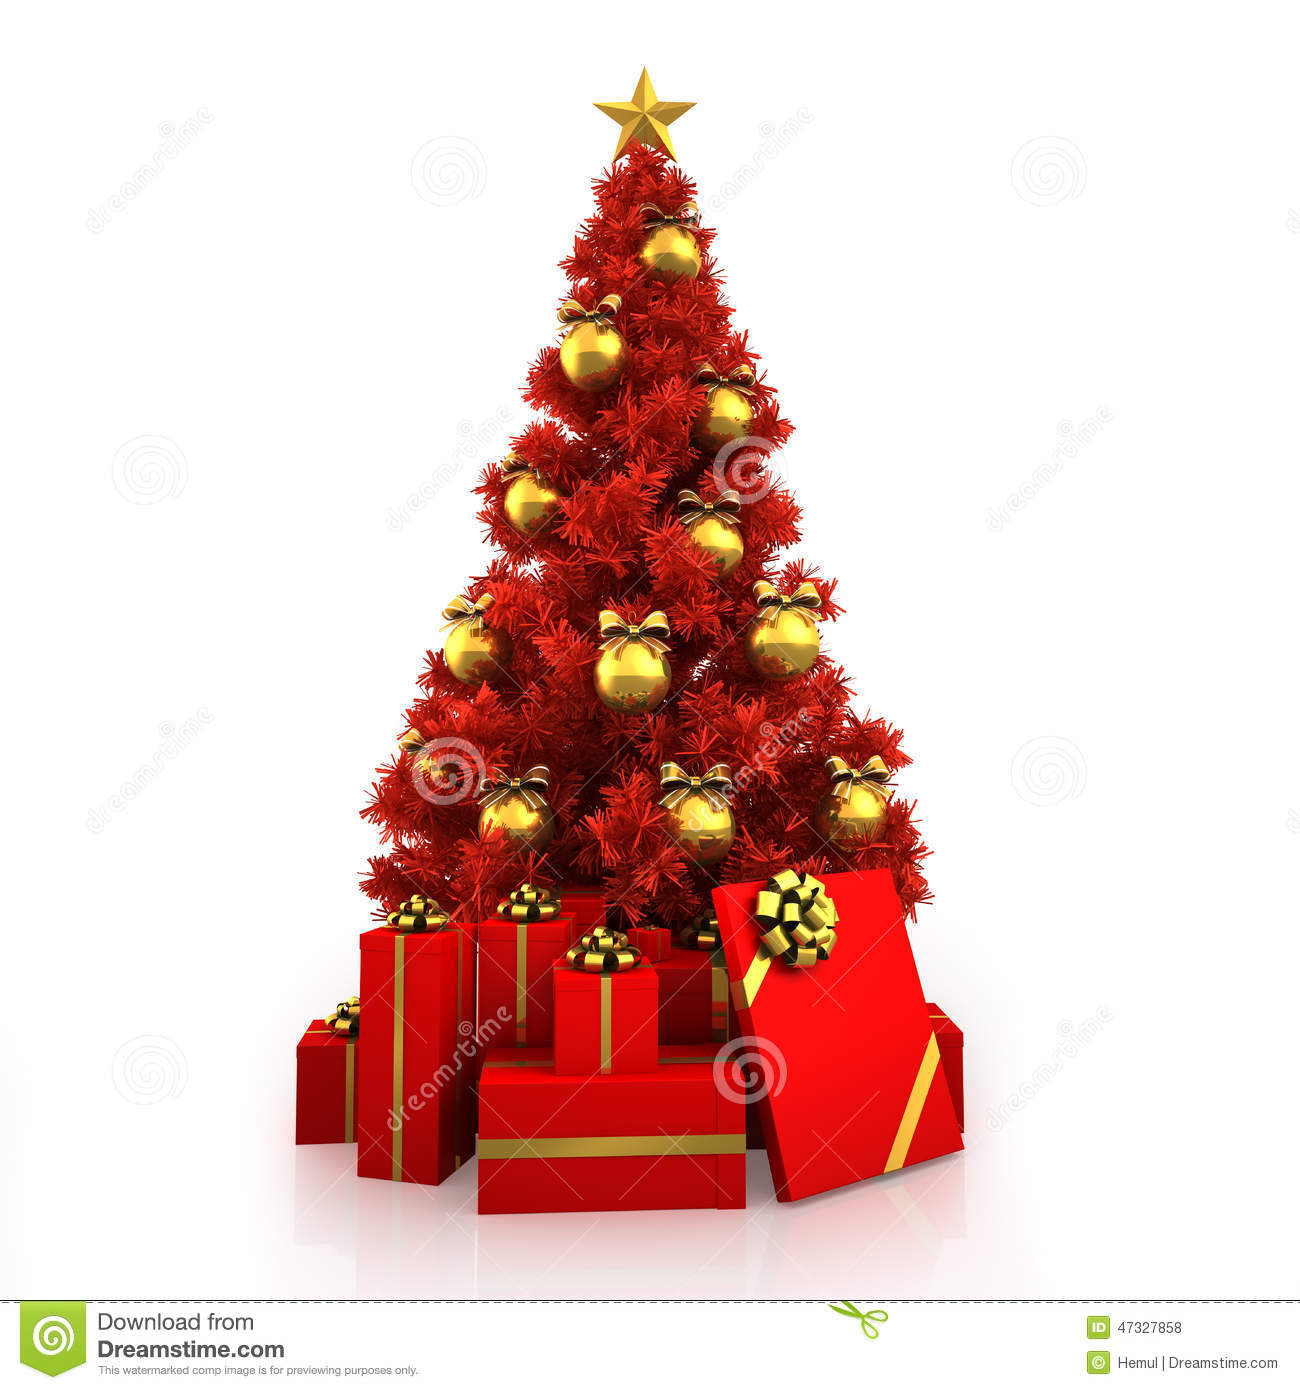 Red And Gold Christmas Trees: Red Christmas Tree With Gold Decor On White Background